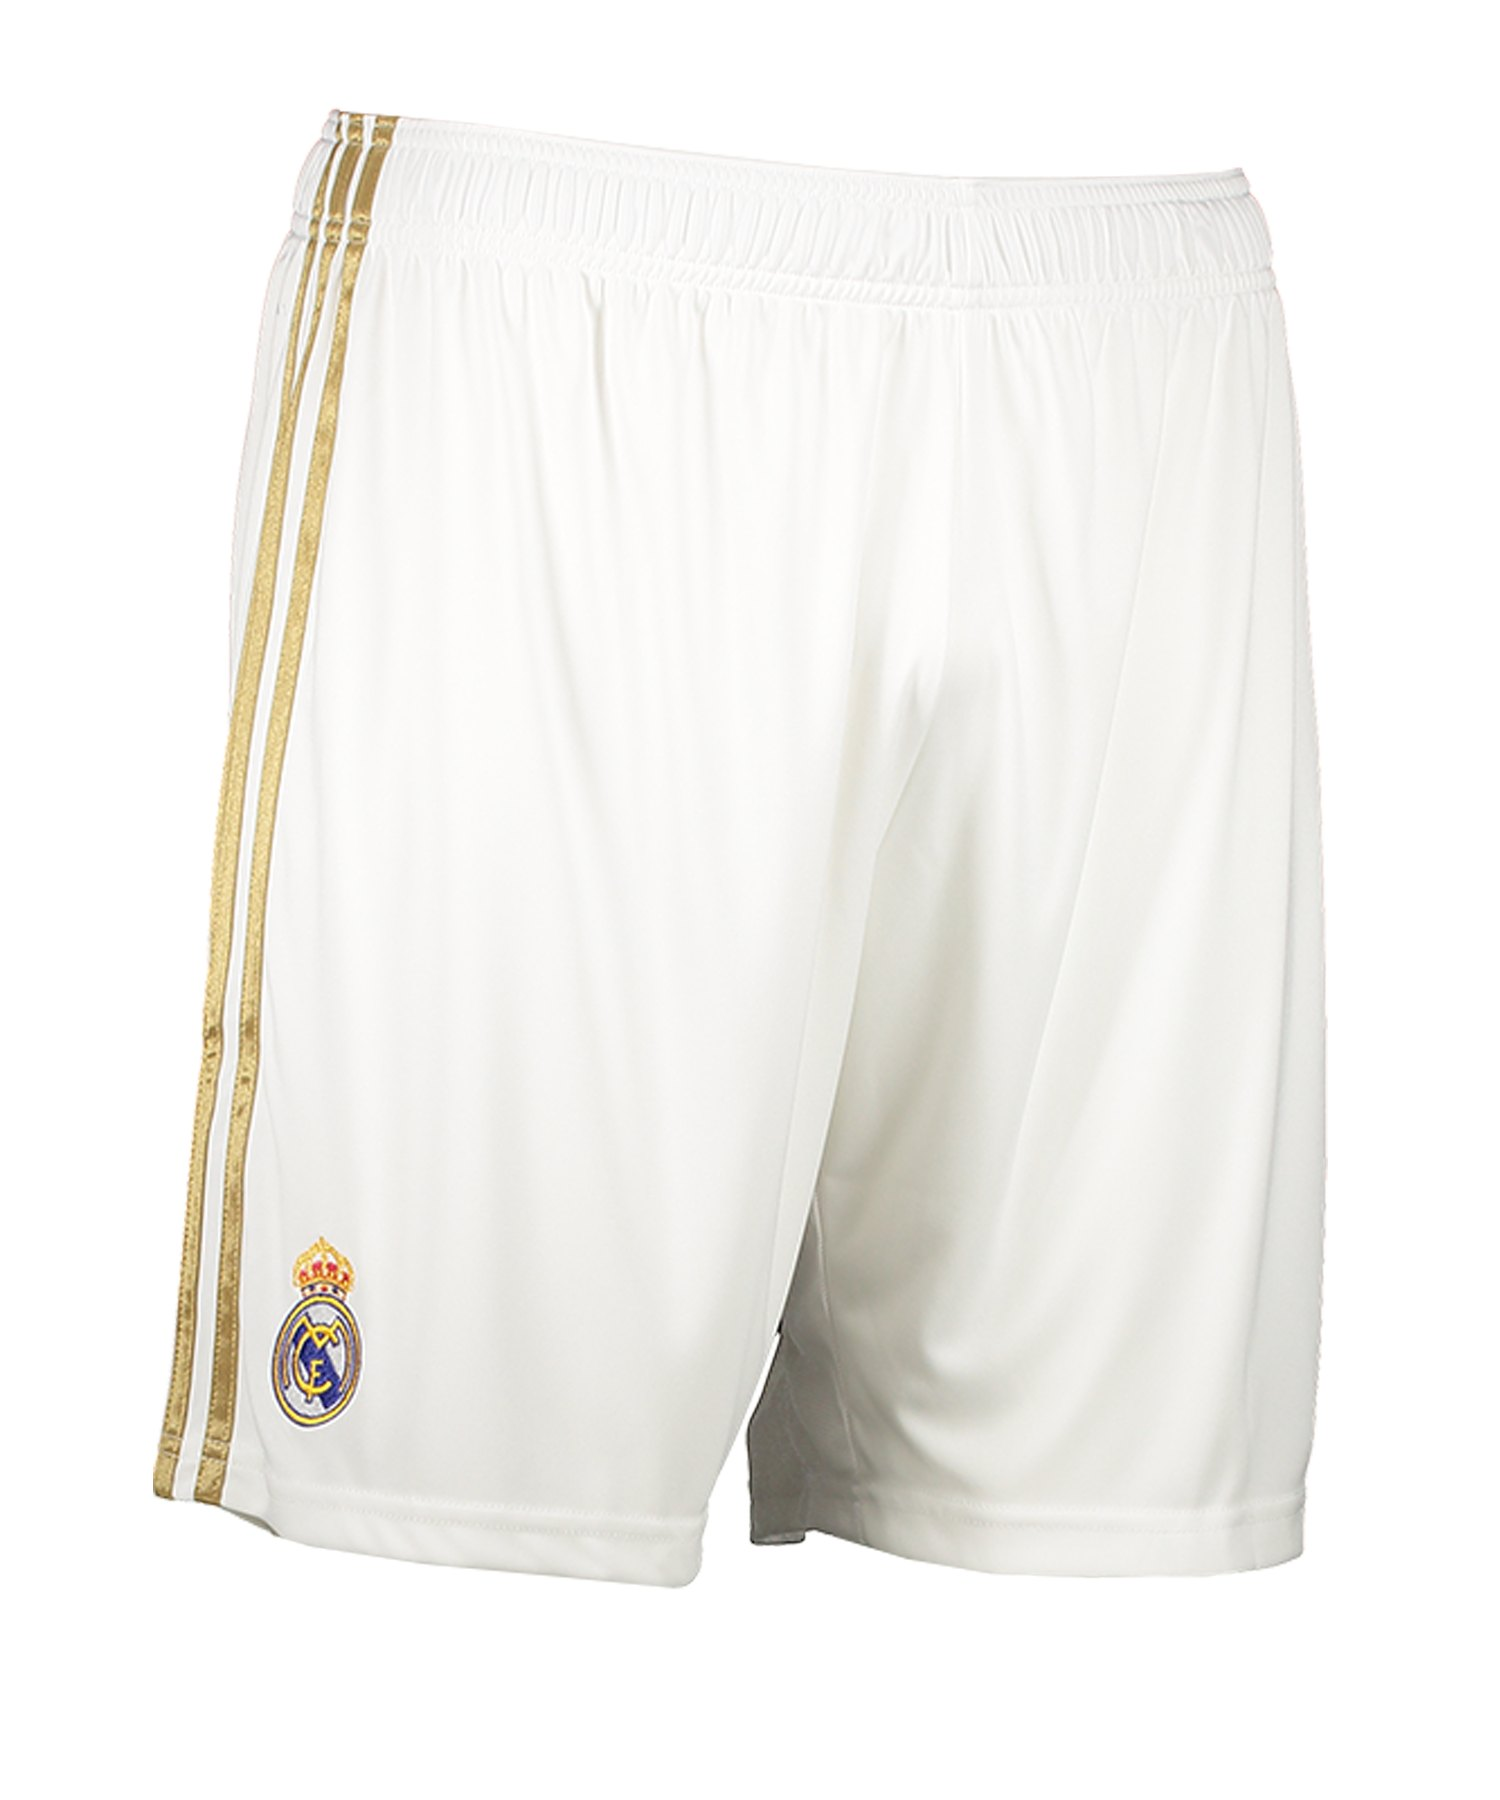 adidas Real Madrid Short Home 2019/2020 Weiss - Weiss